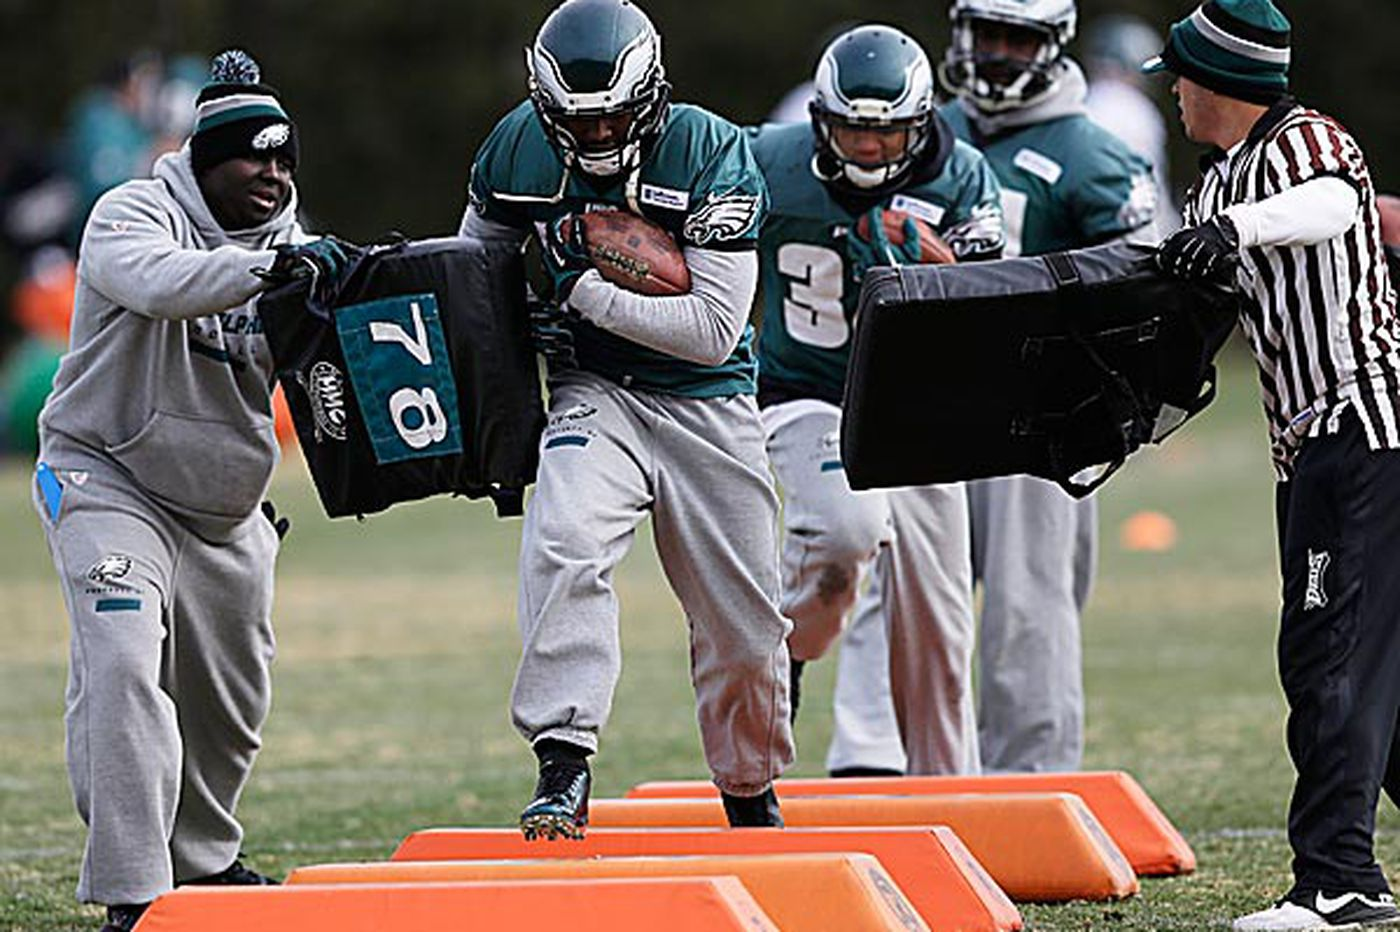 Eagles' ground game seeing big gains from big-gain plays